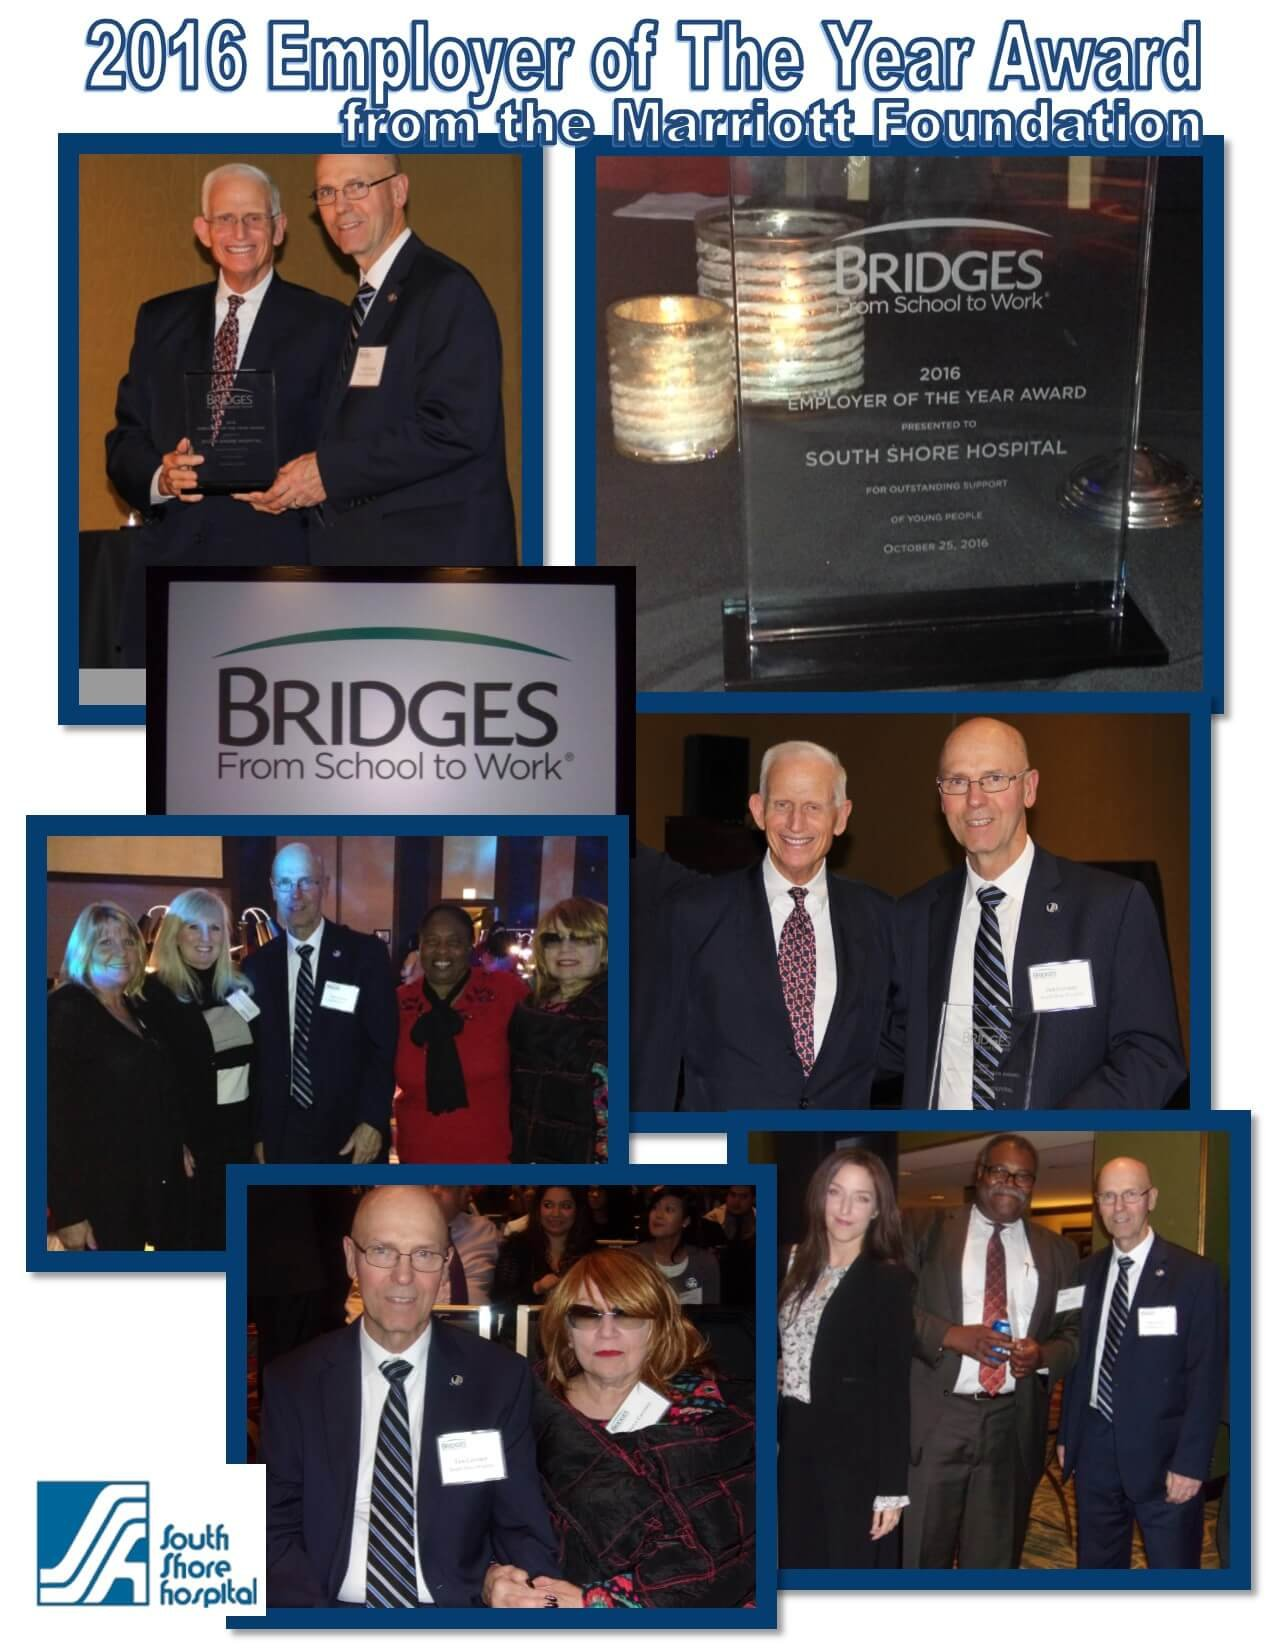 bridges-marriott-foundation-award-2016